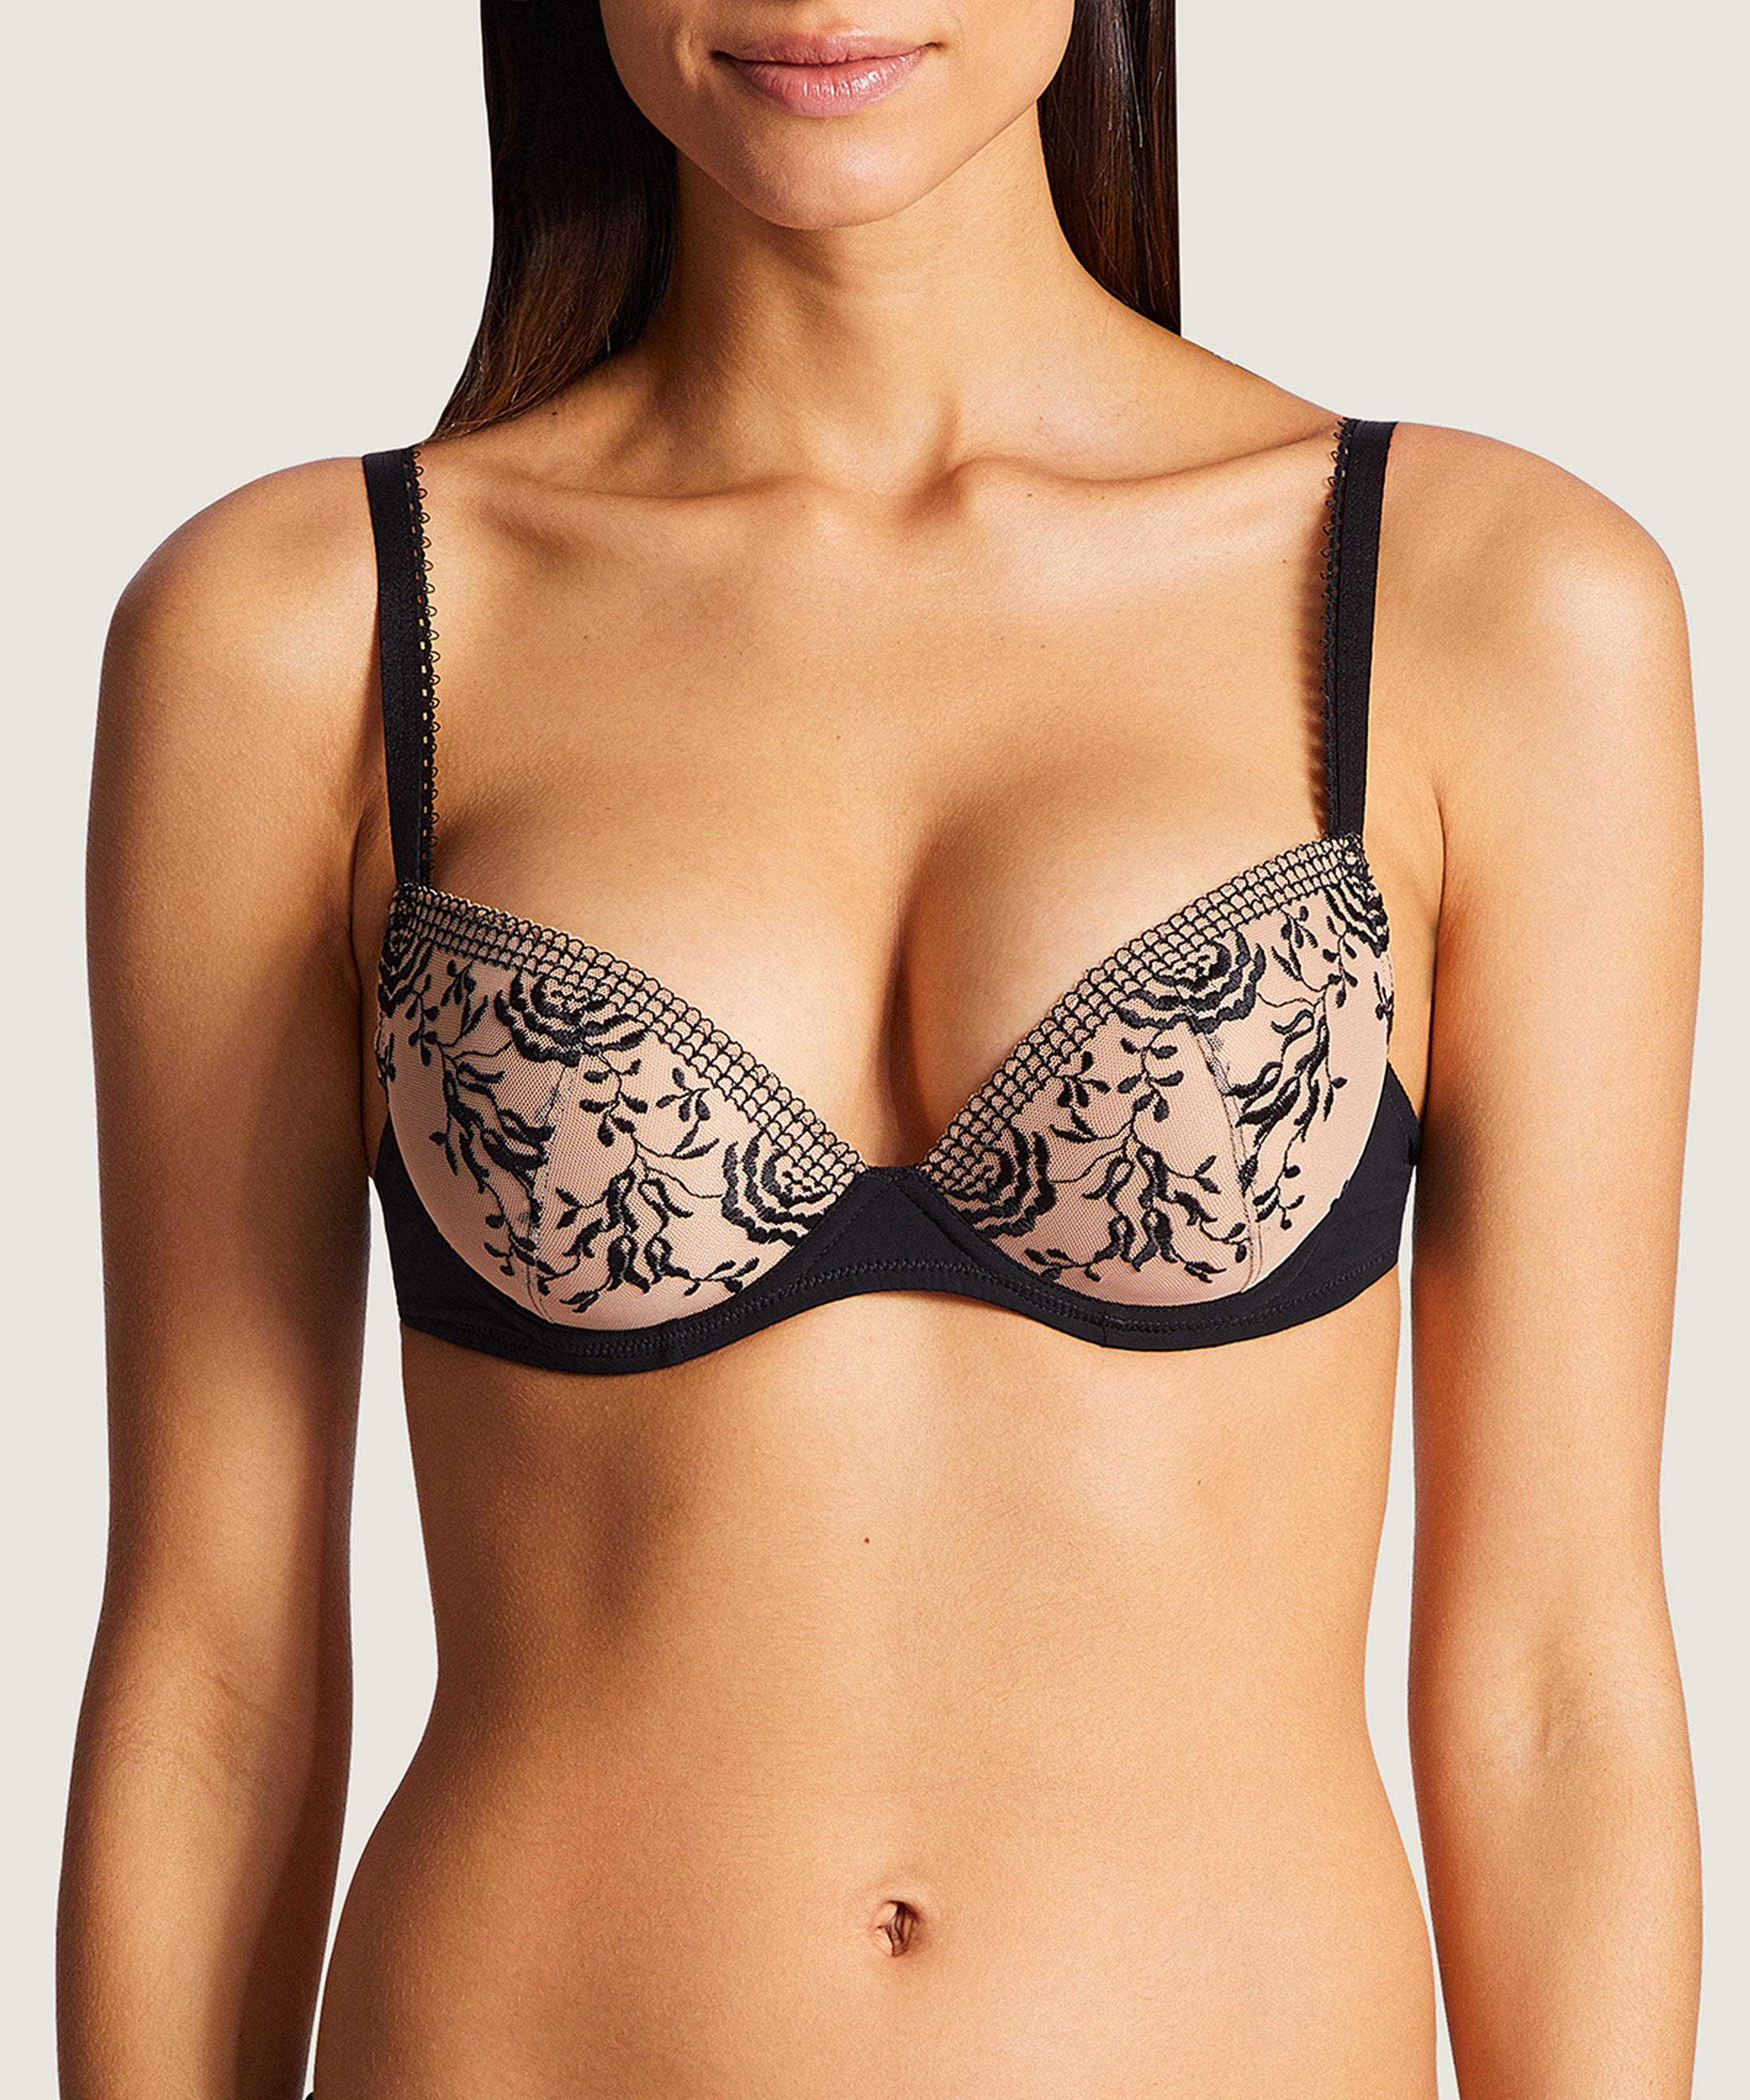 FLEUR DE PASSION Moulded push-up bra Black | Aubade